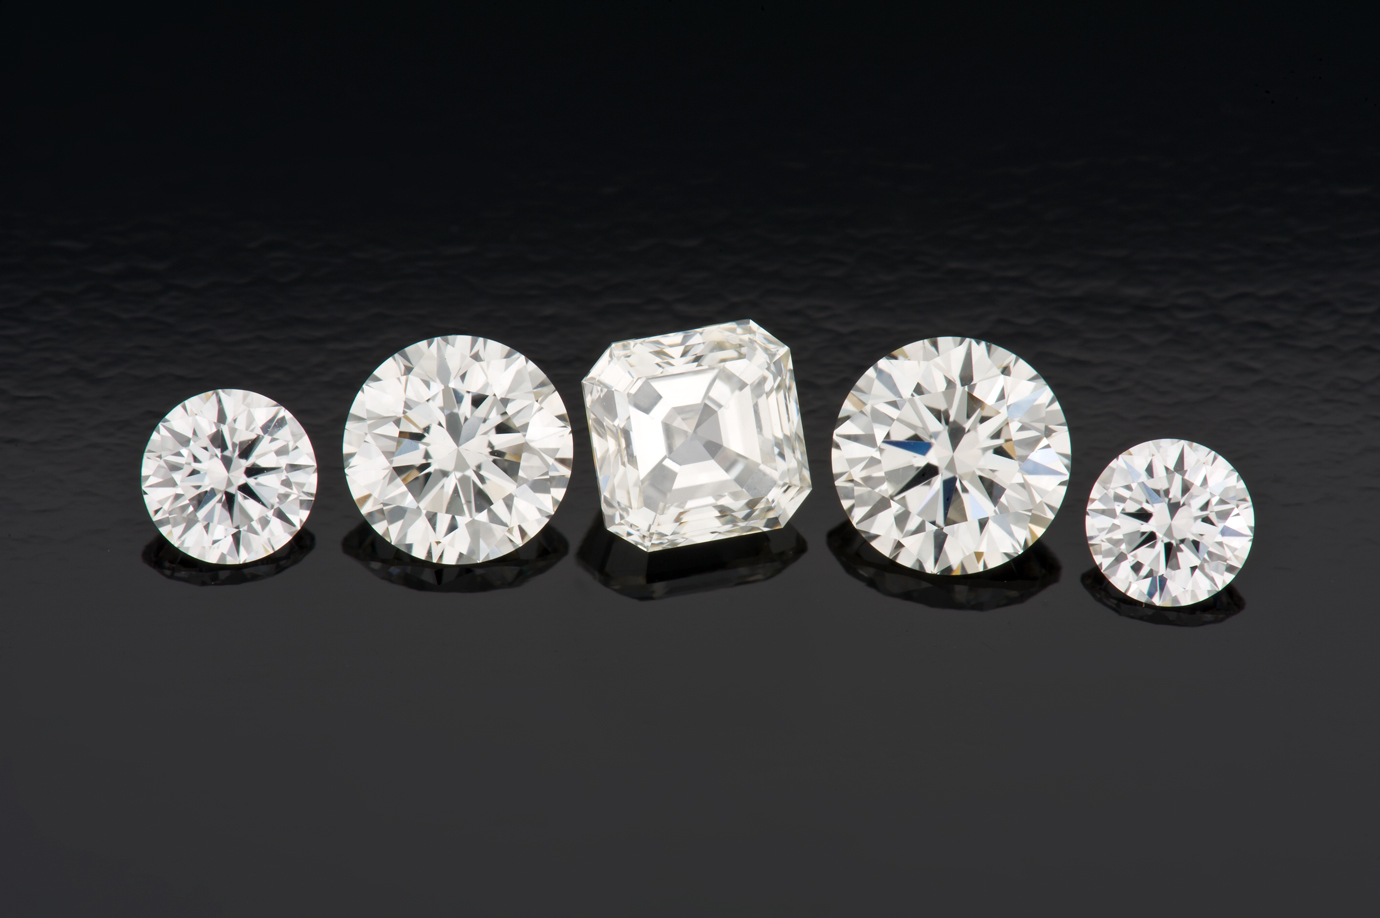 These five CVD synthetic diamonds appear the same to the unaided eye as natural diamonds of comparable quality.